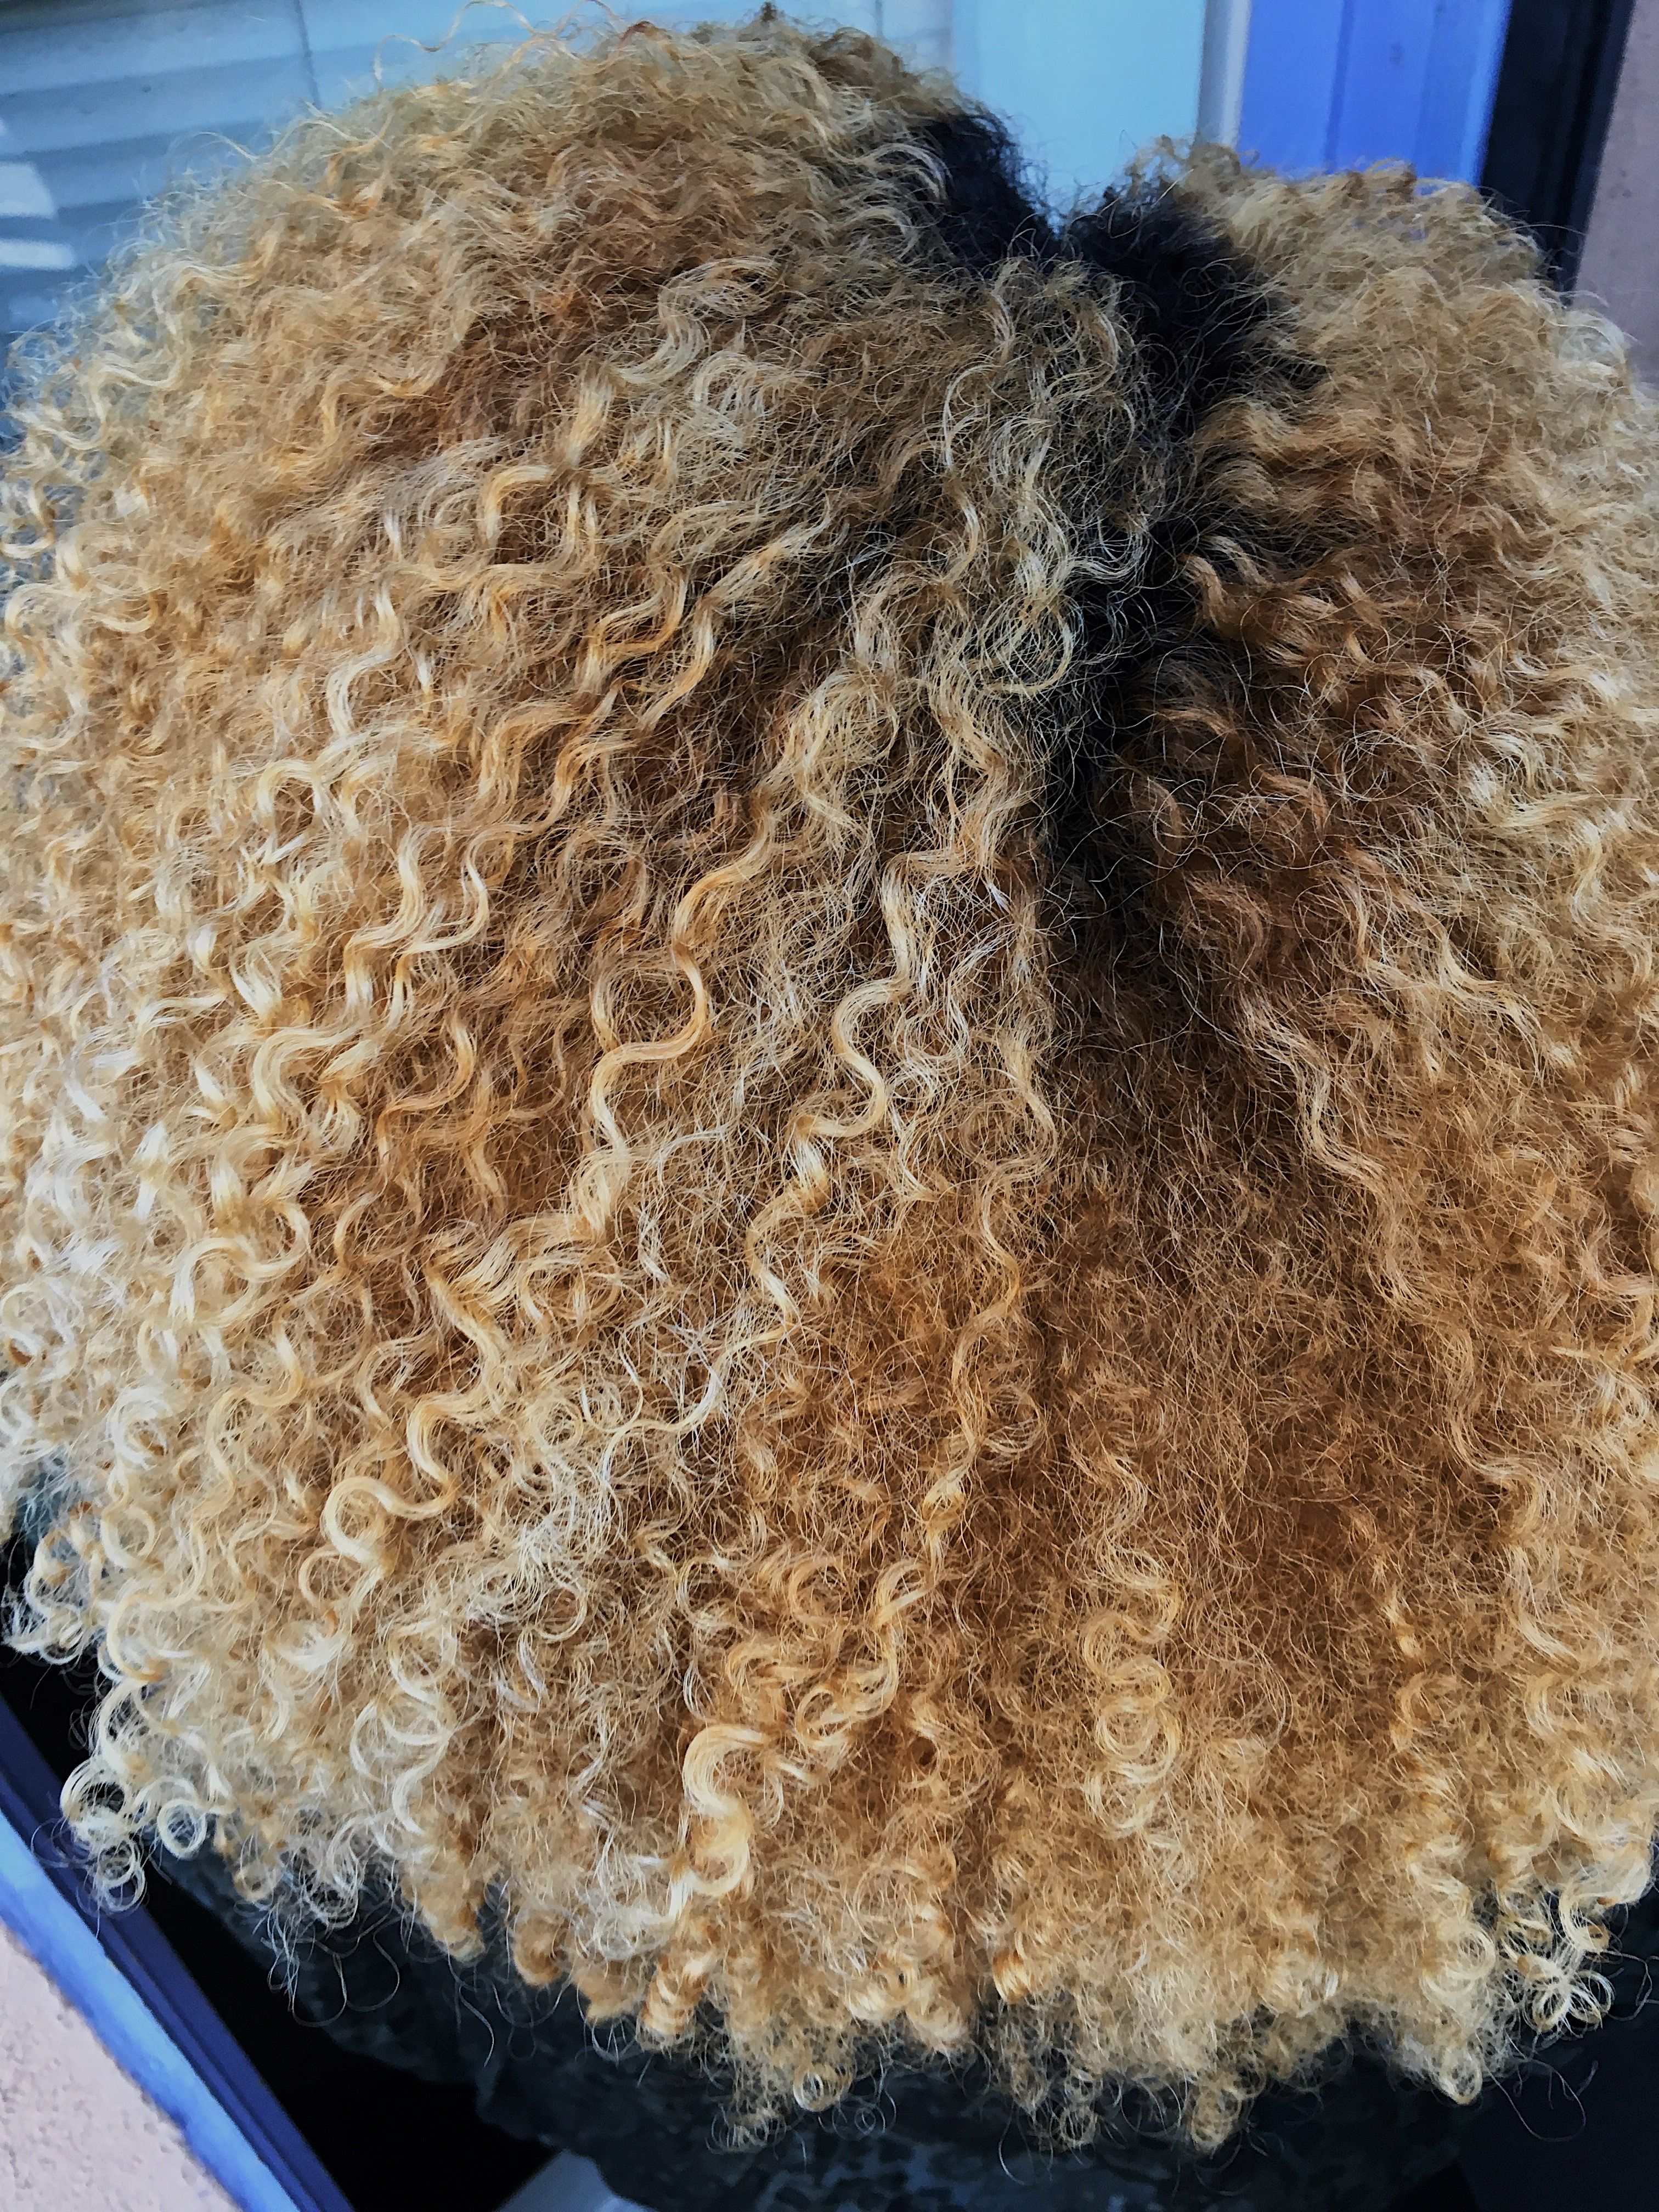 natural hair after using castor oil-blonde curls